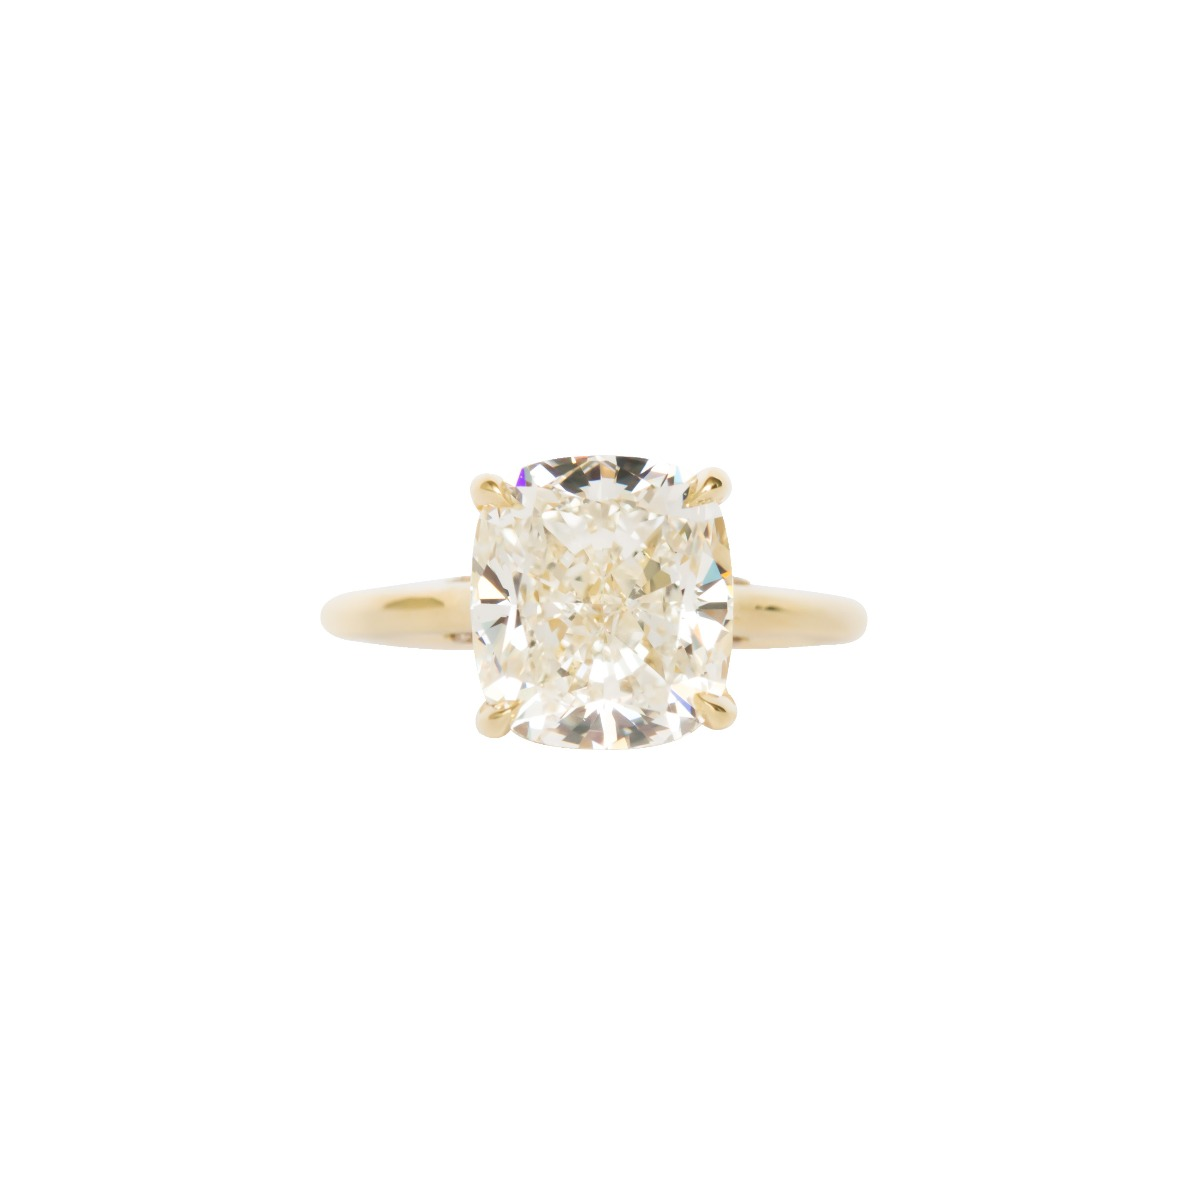 Cushion Cut DBK Classic Solitaire Setting With Diamond Basket & Bridge In Yellow Gold